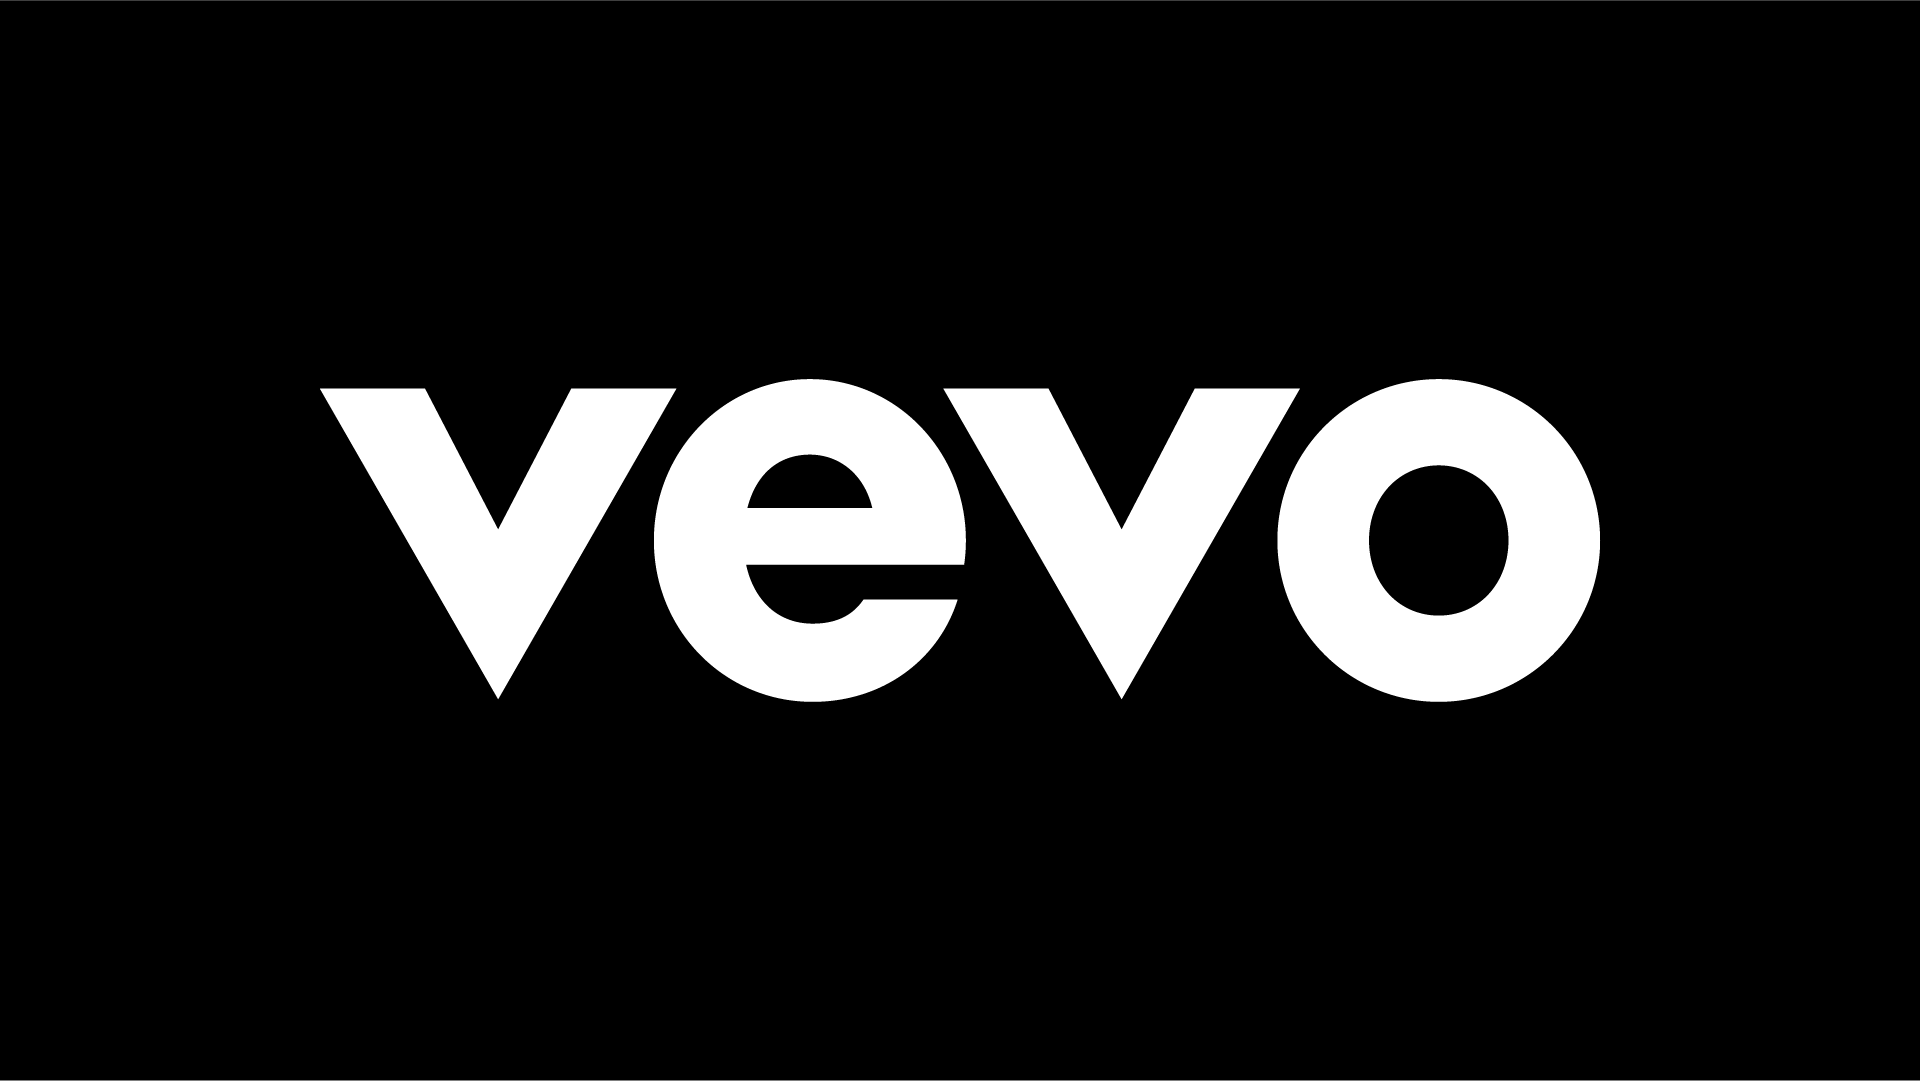 vevo_clearspace-copy.png